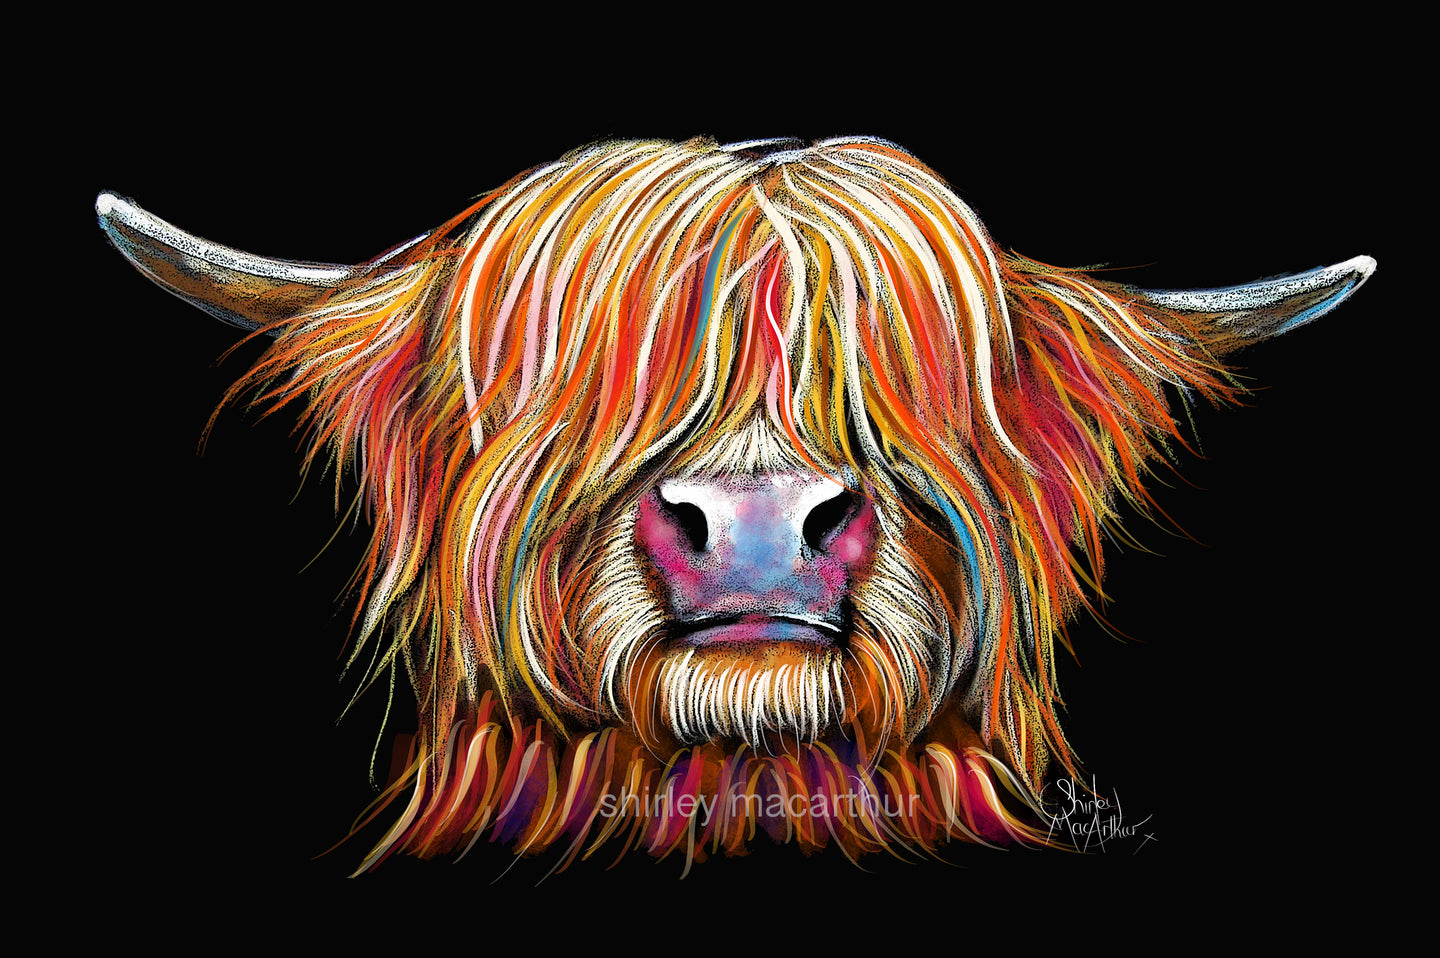 Highland Cow Prints 'Charmer' by Shirley MacArthur